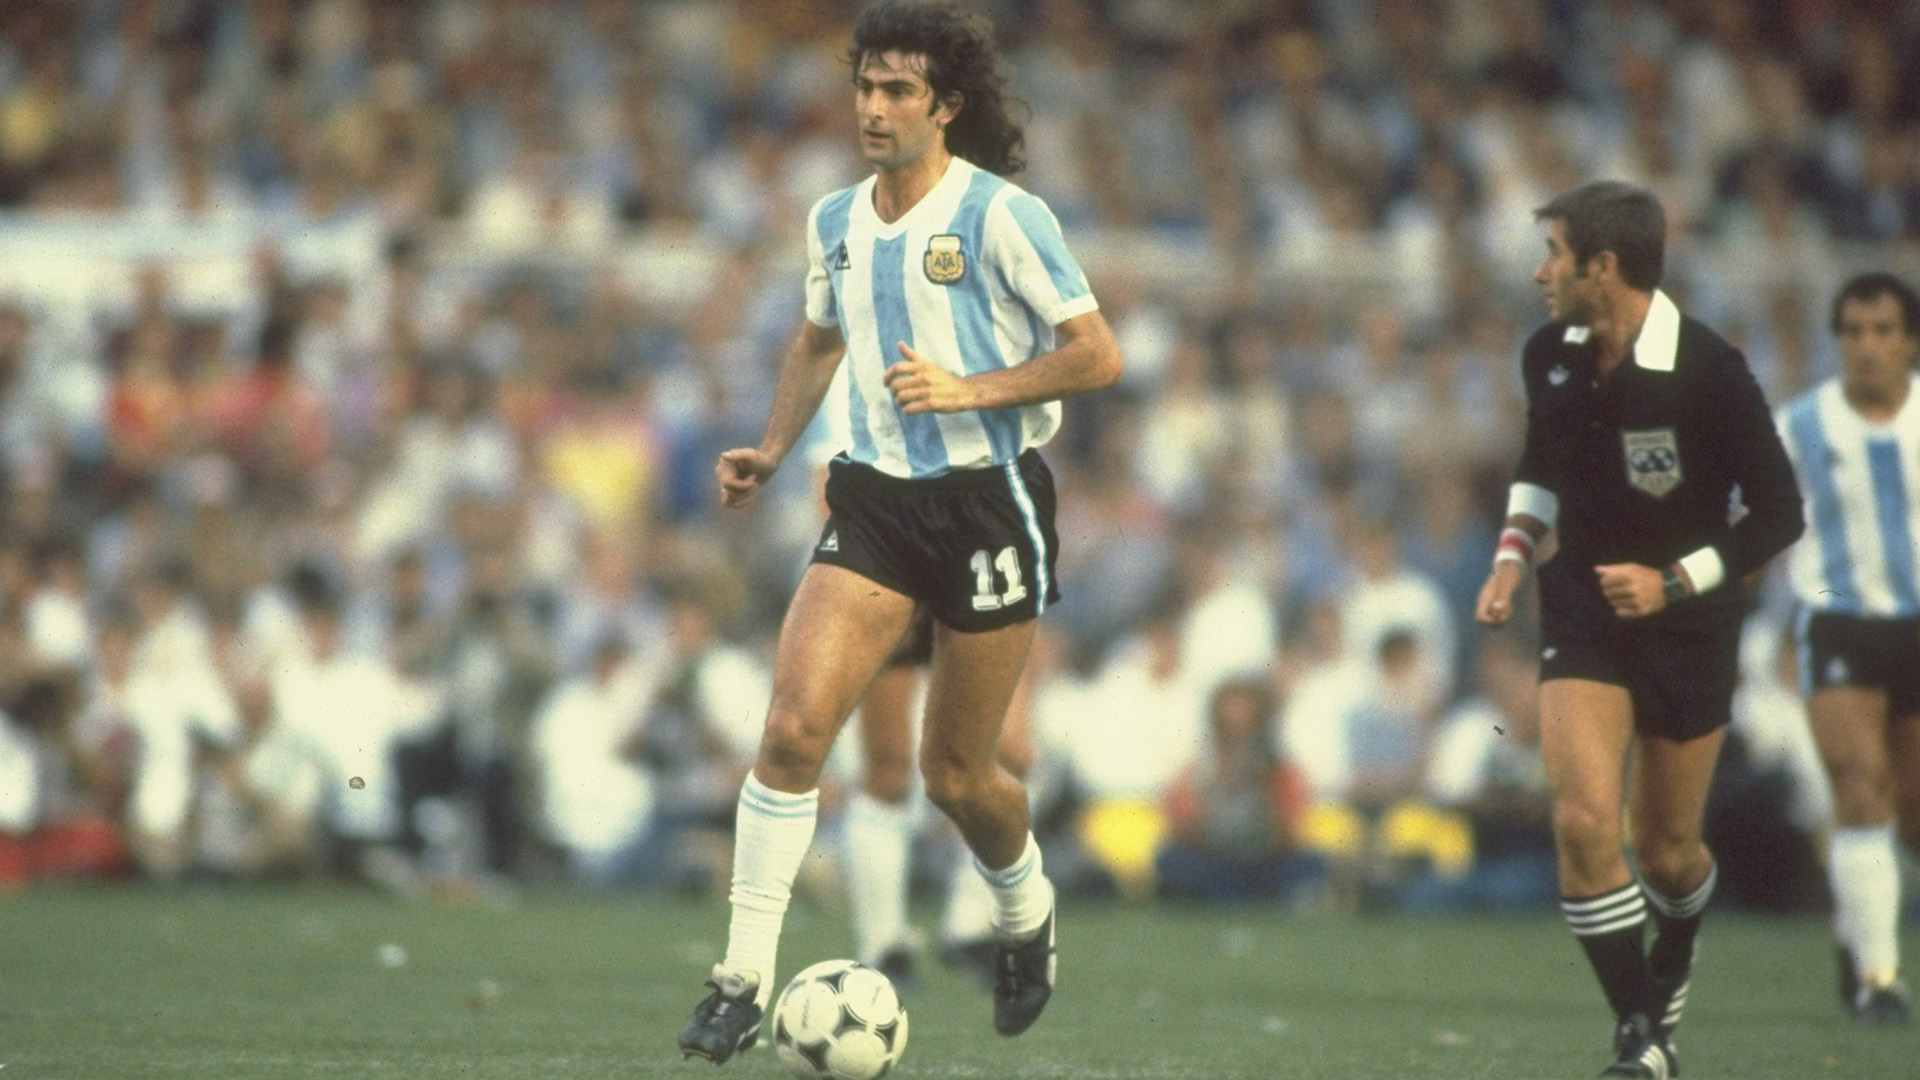 13 Jun 1982: Mario Kempes (centre) of Argentina runs with the ball during the World Cup match between Argentina and Belgium in Barcelona, Spain. Belgium won the match 1-0. Mandatory Credit: Steve Powell/Allsport